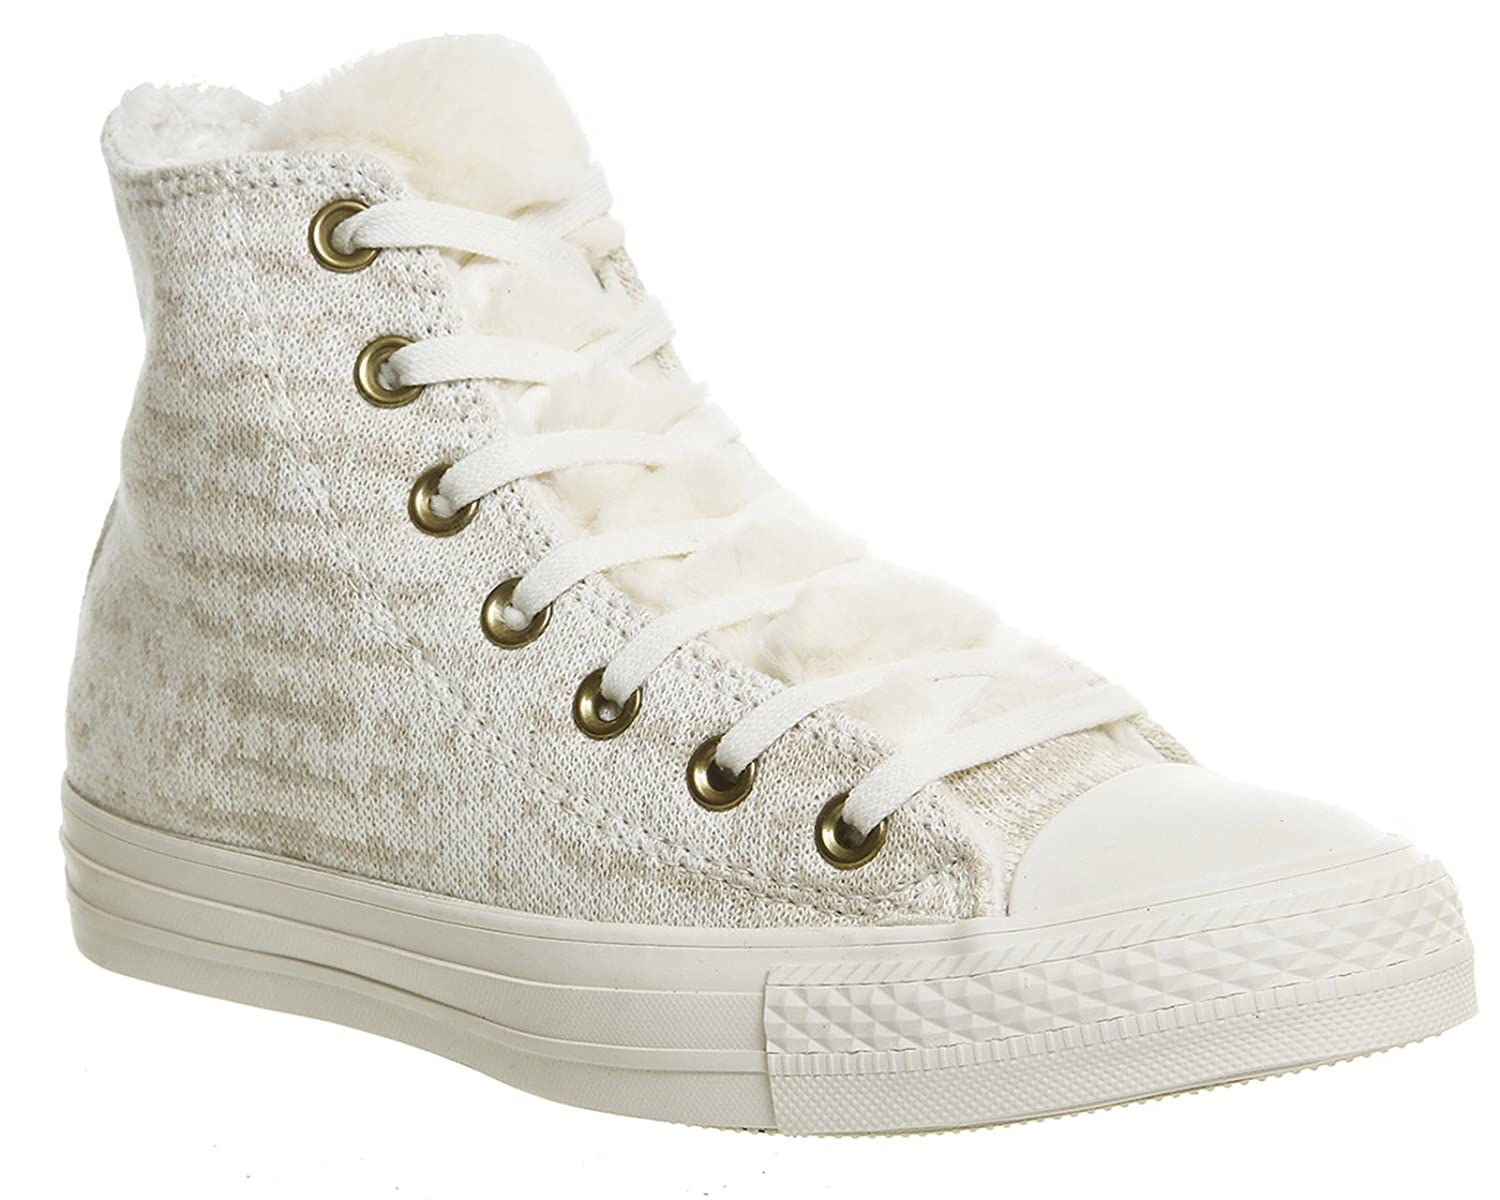 Converse Chuck Taylor All Star Winter Knit High Top womens fashion-sneakers  553360C 85%